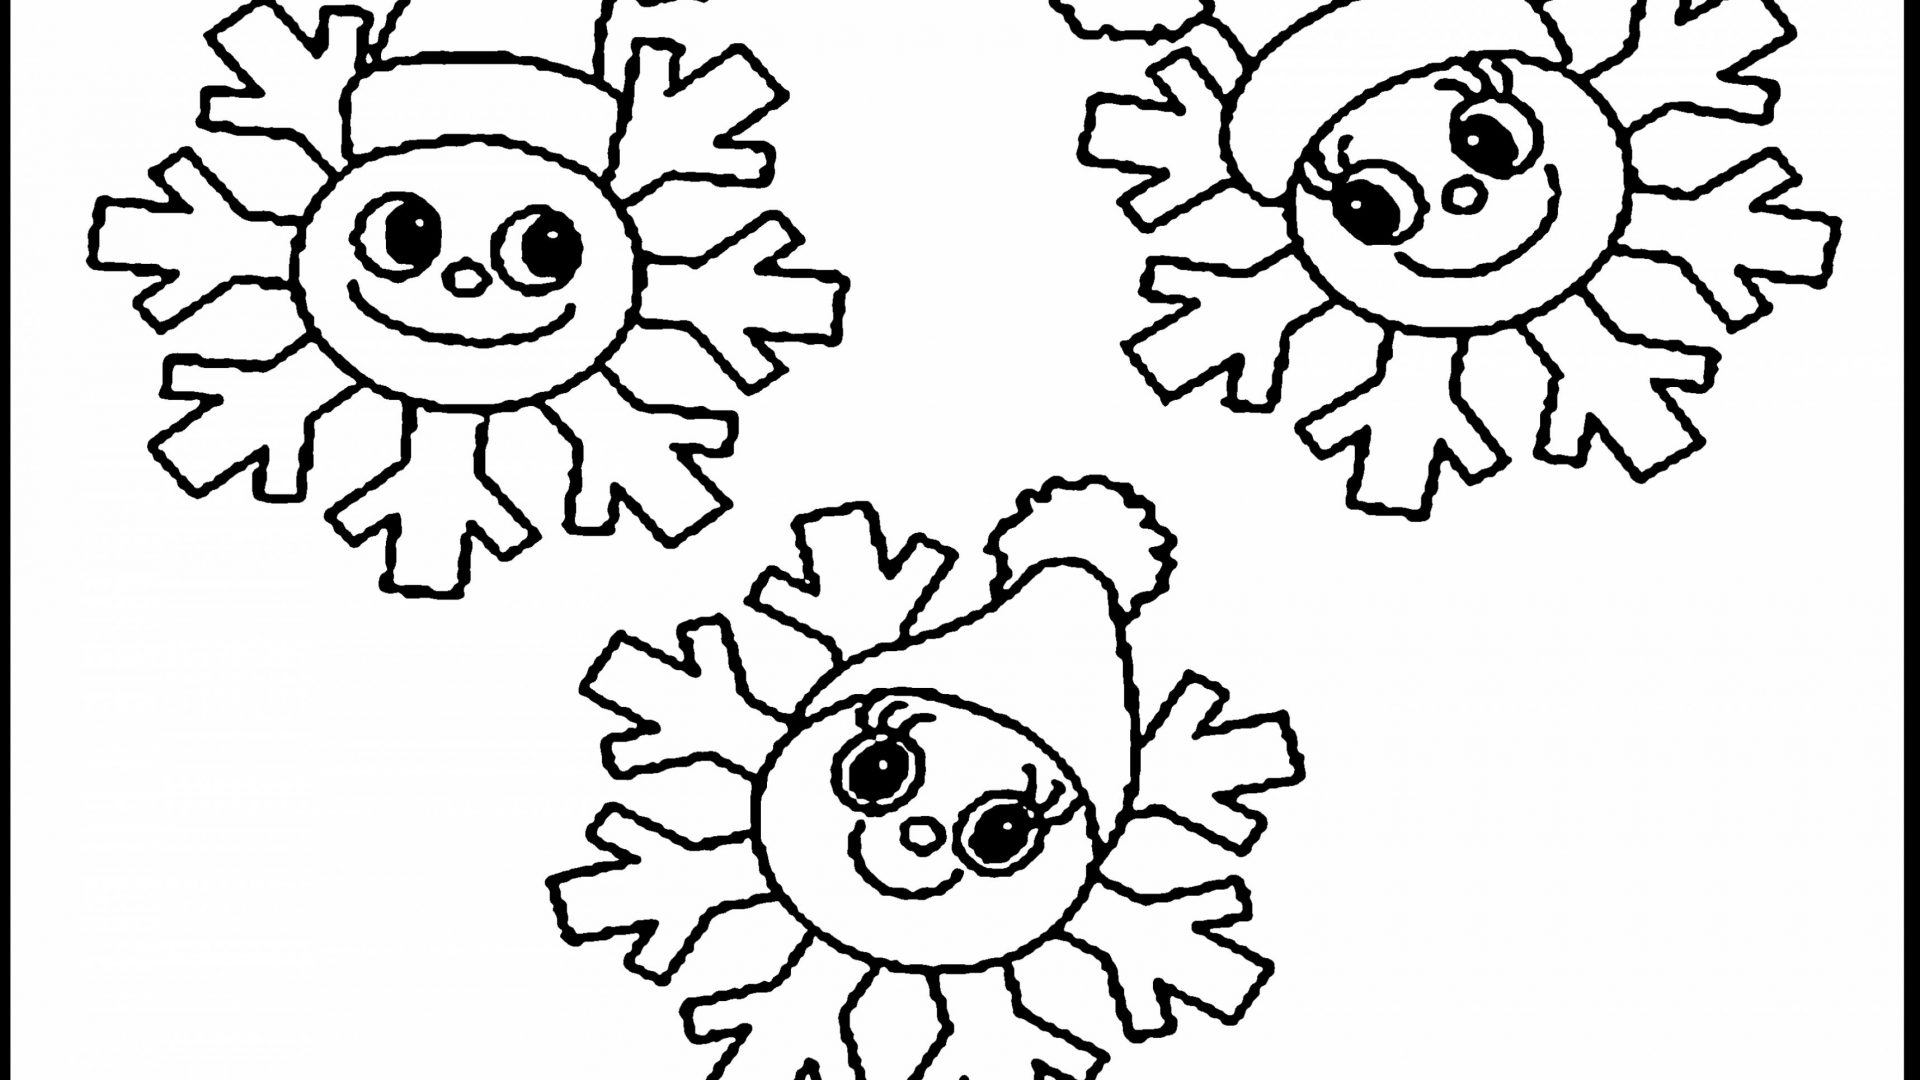 1920x1080 Snowflakes Coloring Pages Simple For Kids Unique Snowflake Free